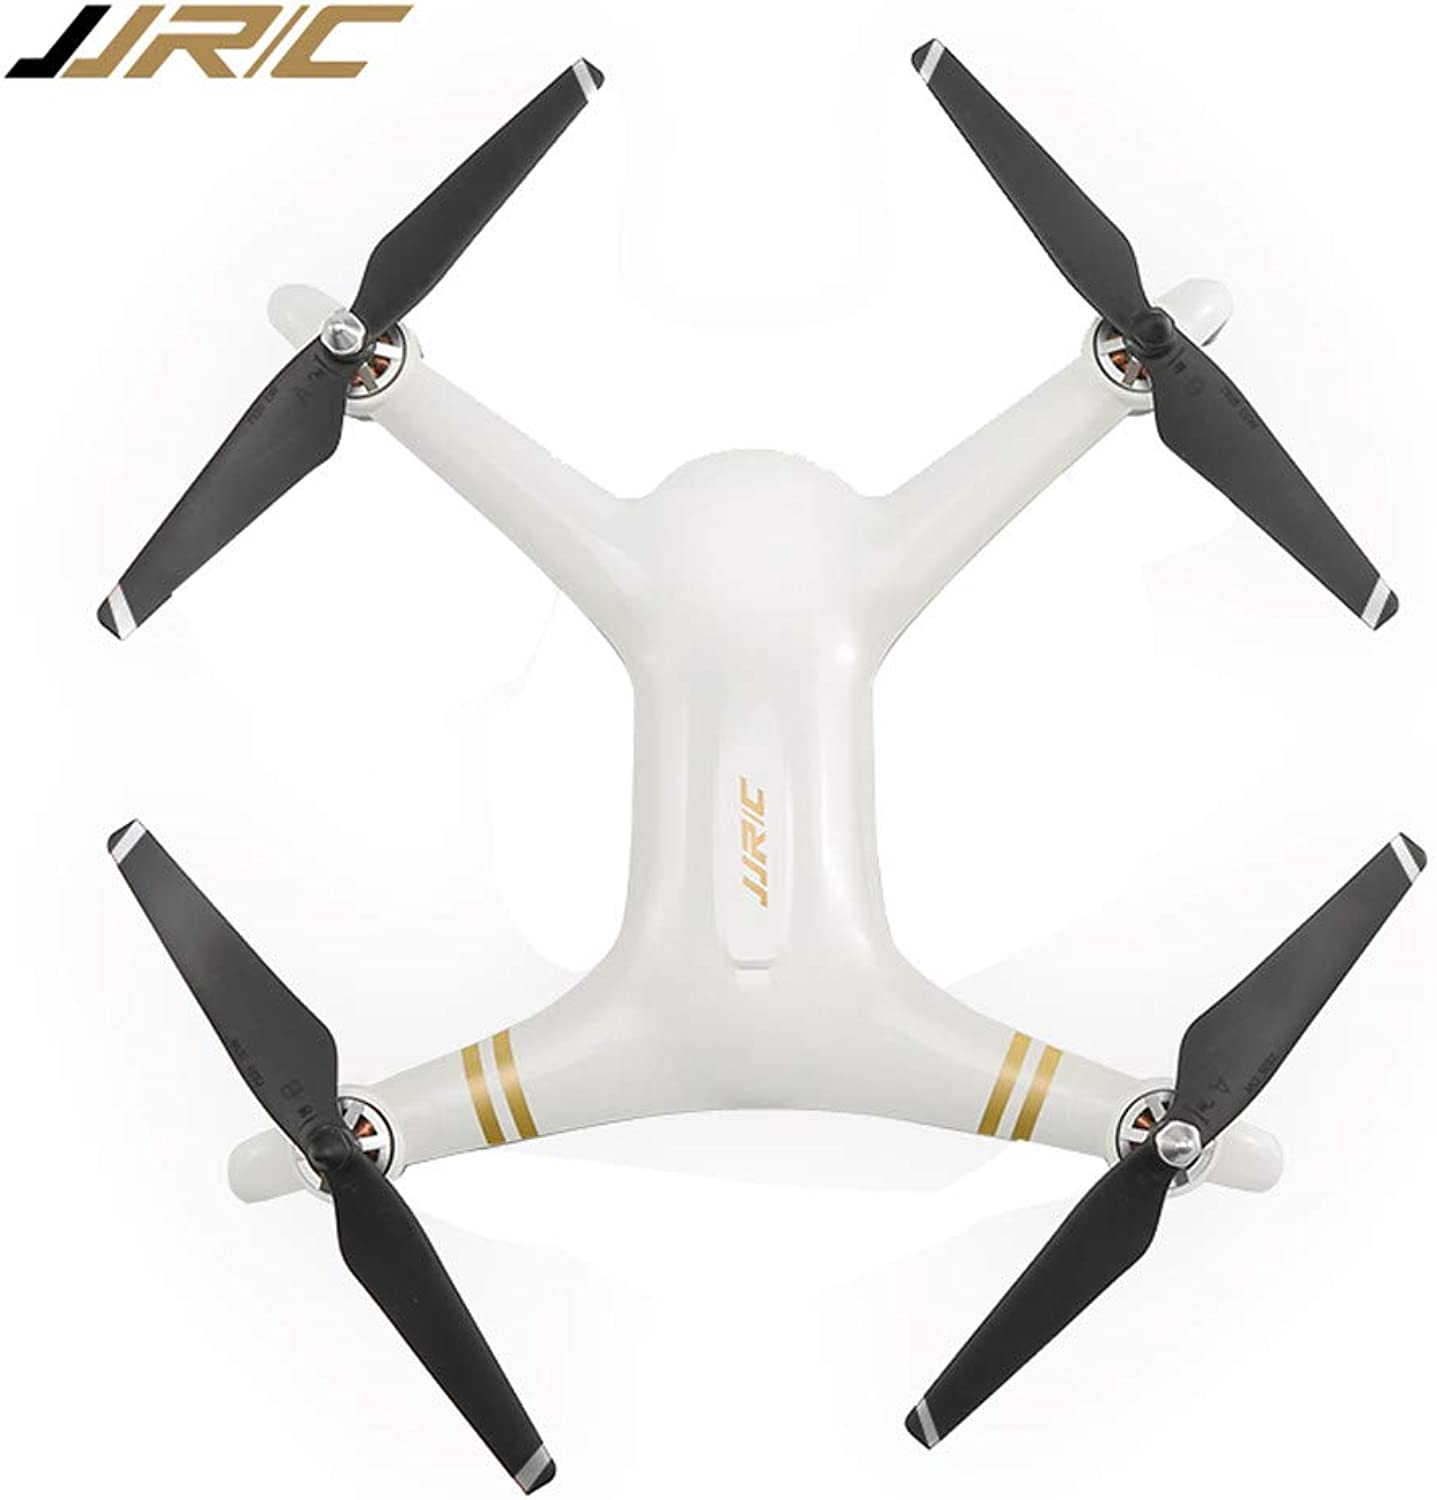 Generic JJRC X7 Drone 5GWiFi FPV GPS Drone with 1080P HD Camera Smart RTF Remote Control Toys Selfie Drone Altitude Hold RC Quadcopter White